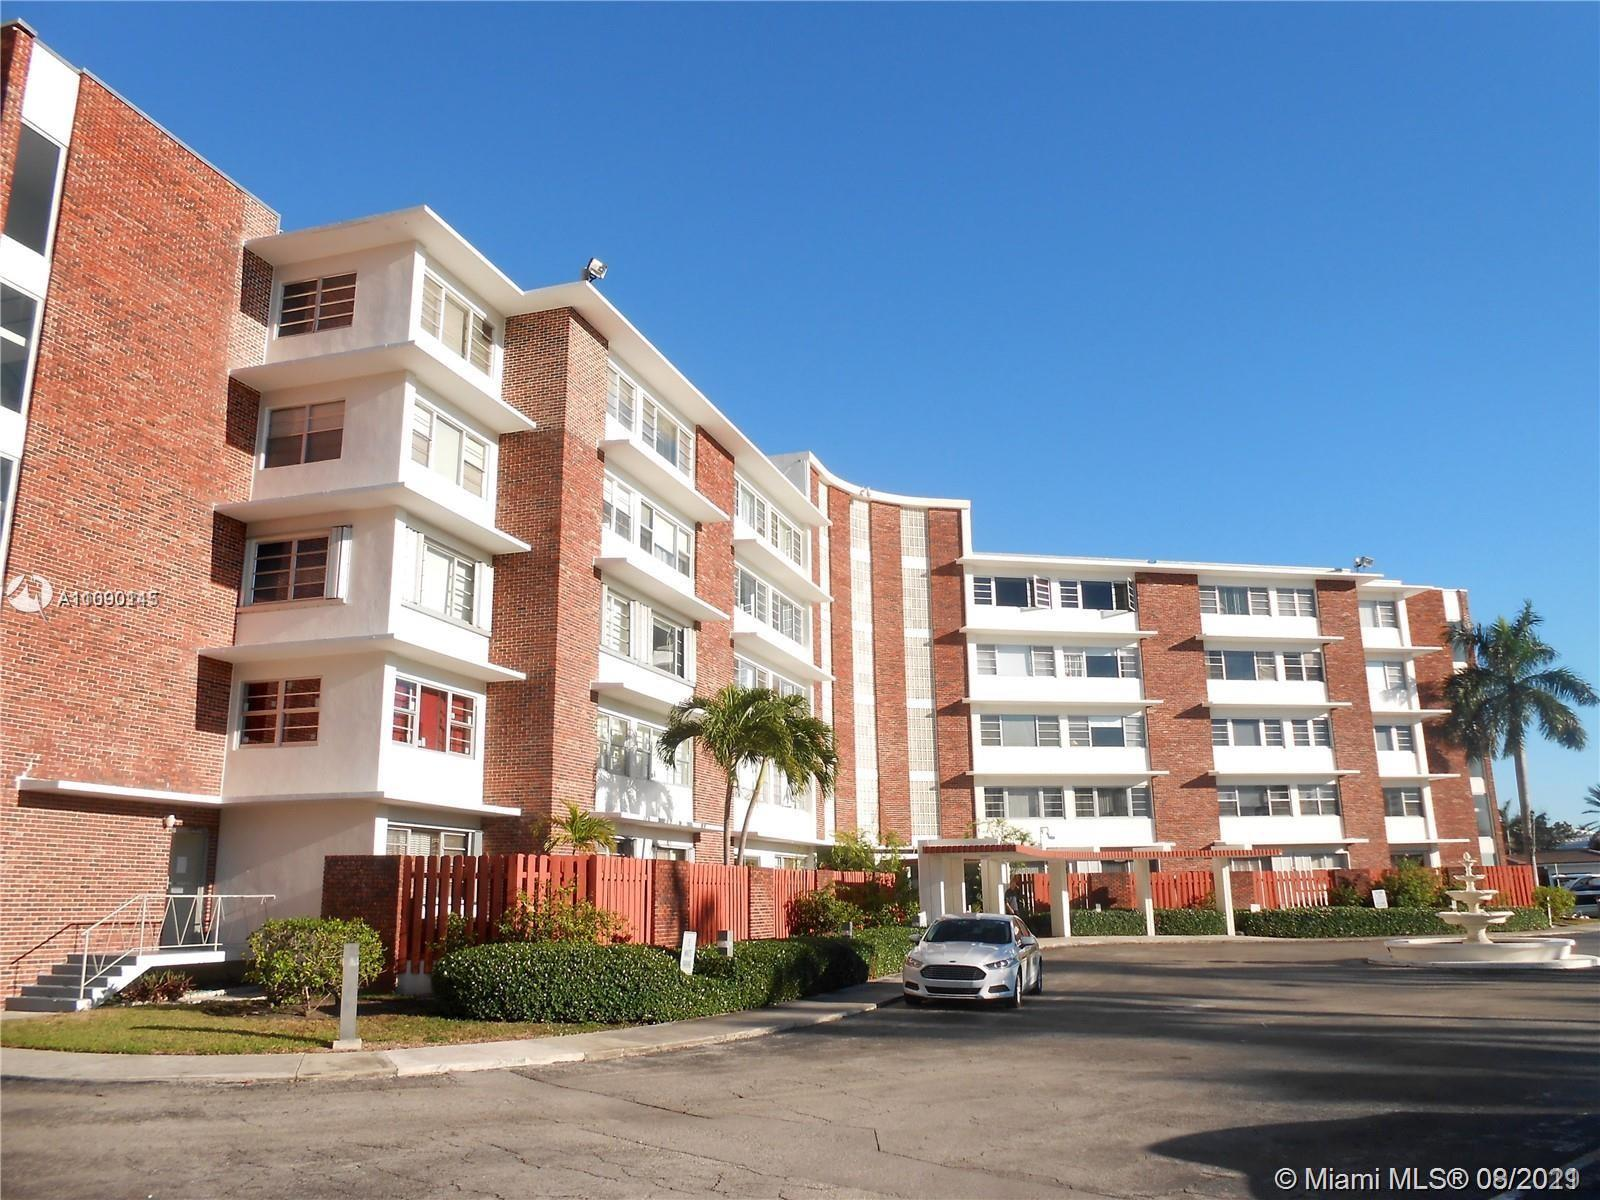 AMAZING LOCATION ON WATER'S EDGE WITH TWO PATIOS. TOTALLY RENOVATED 2/2 CORNER UNIT. NEW HURRICANE I